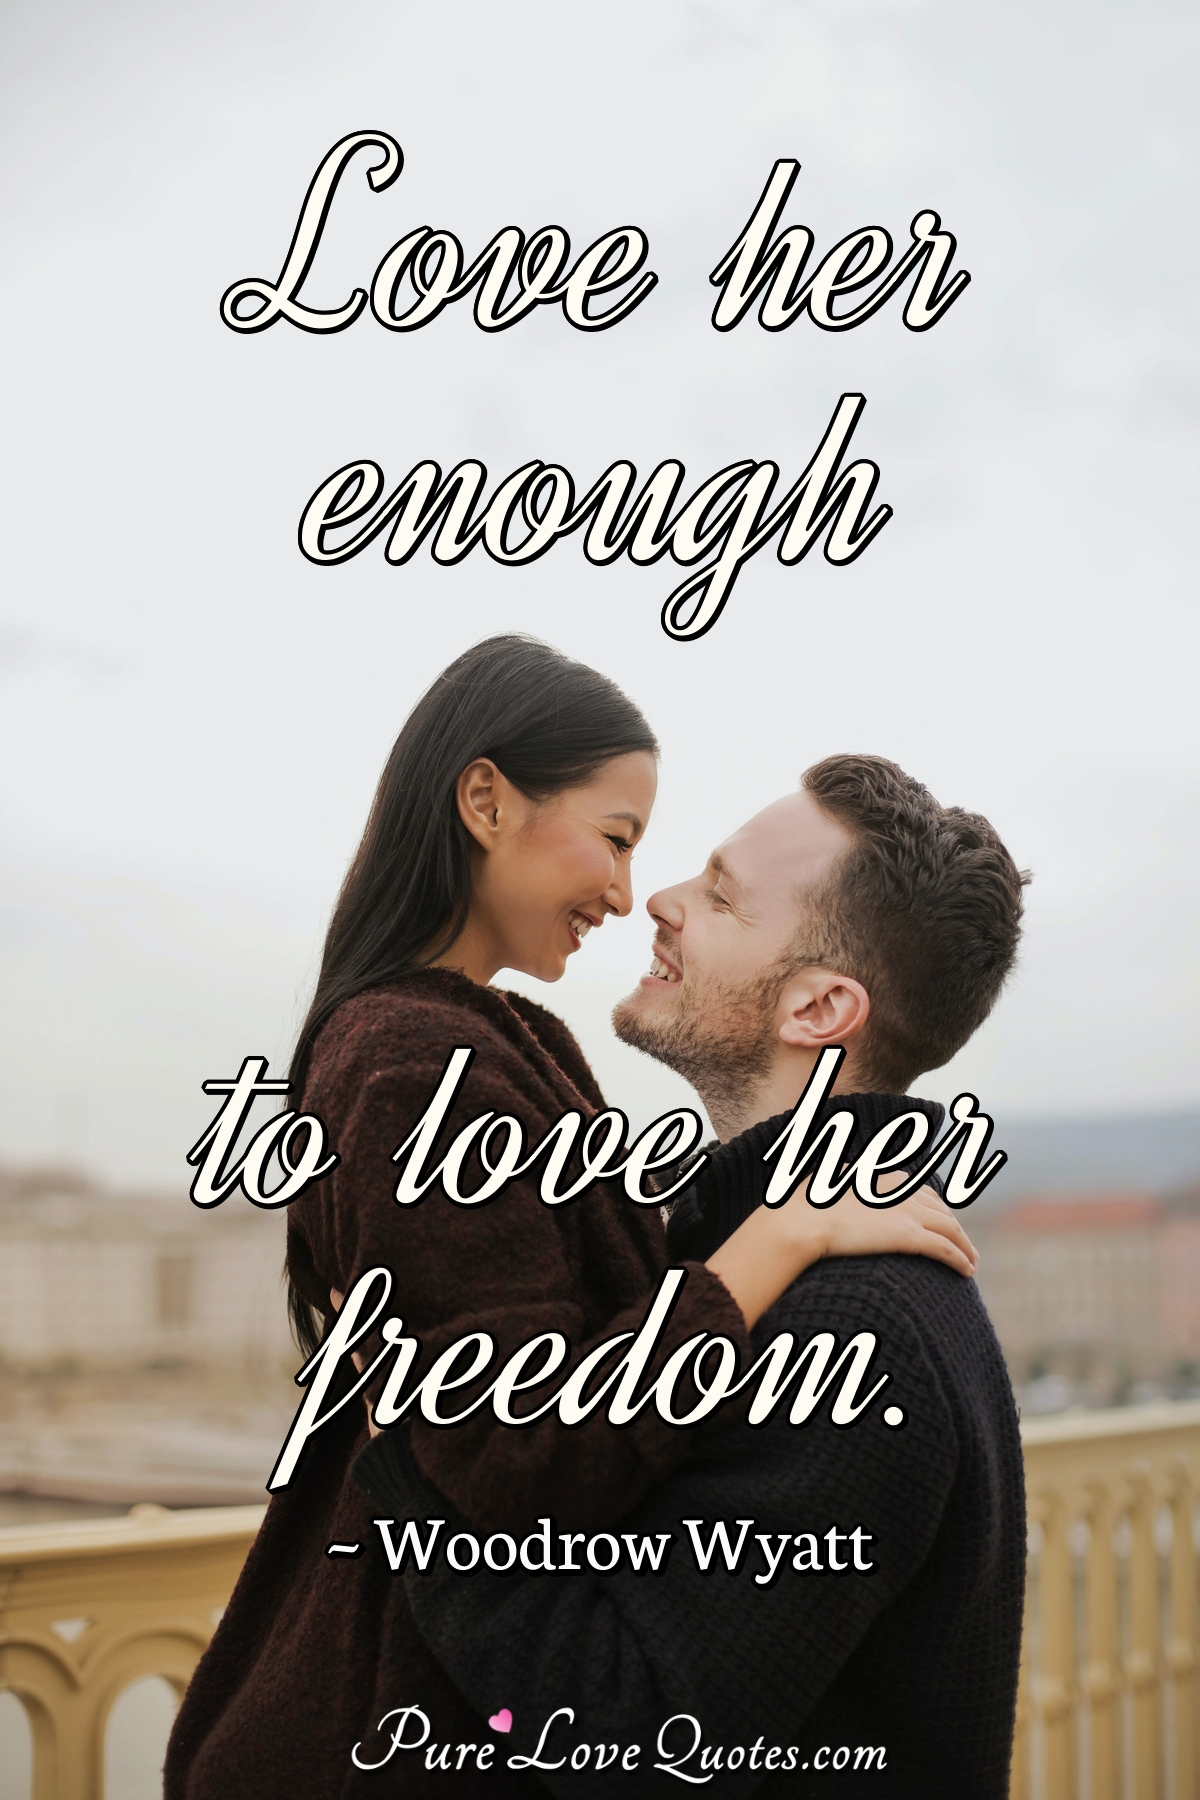 Love her enough to love her freedom. - Woodrow Wyatt